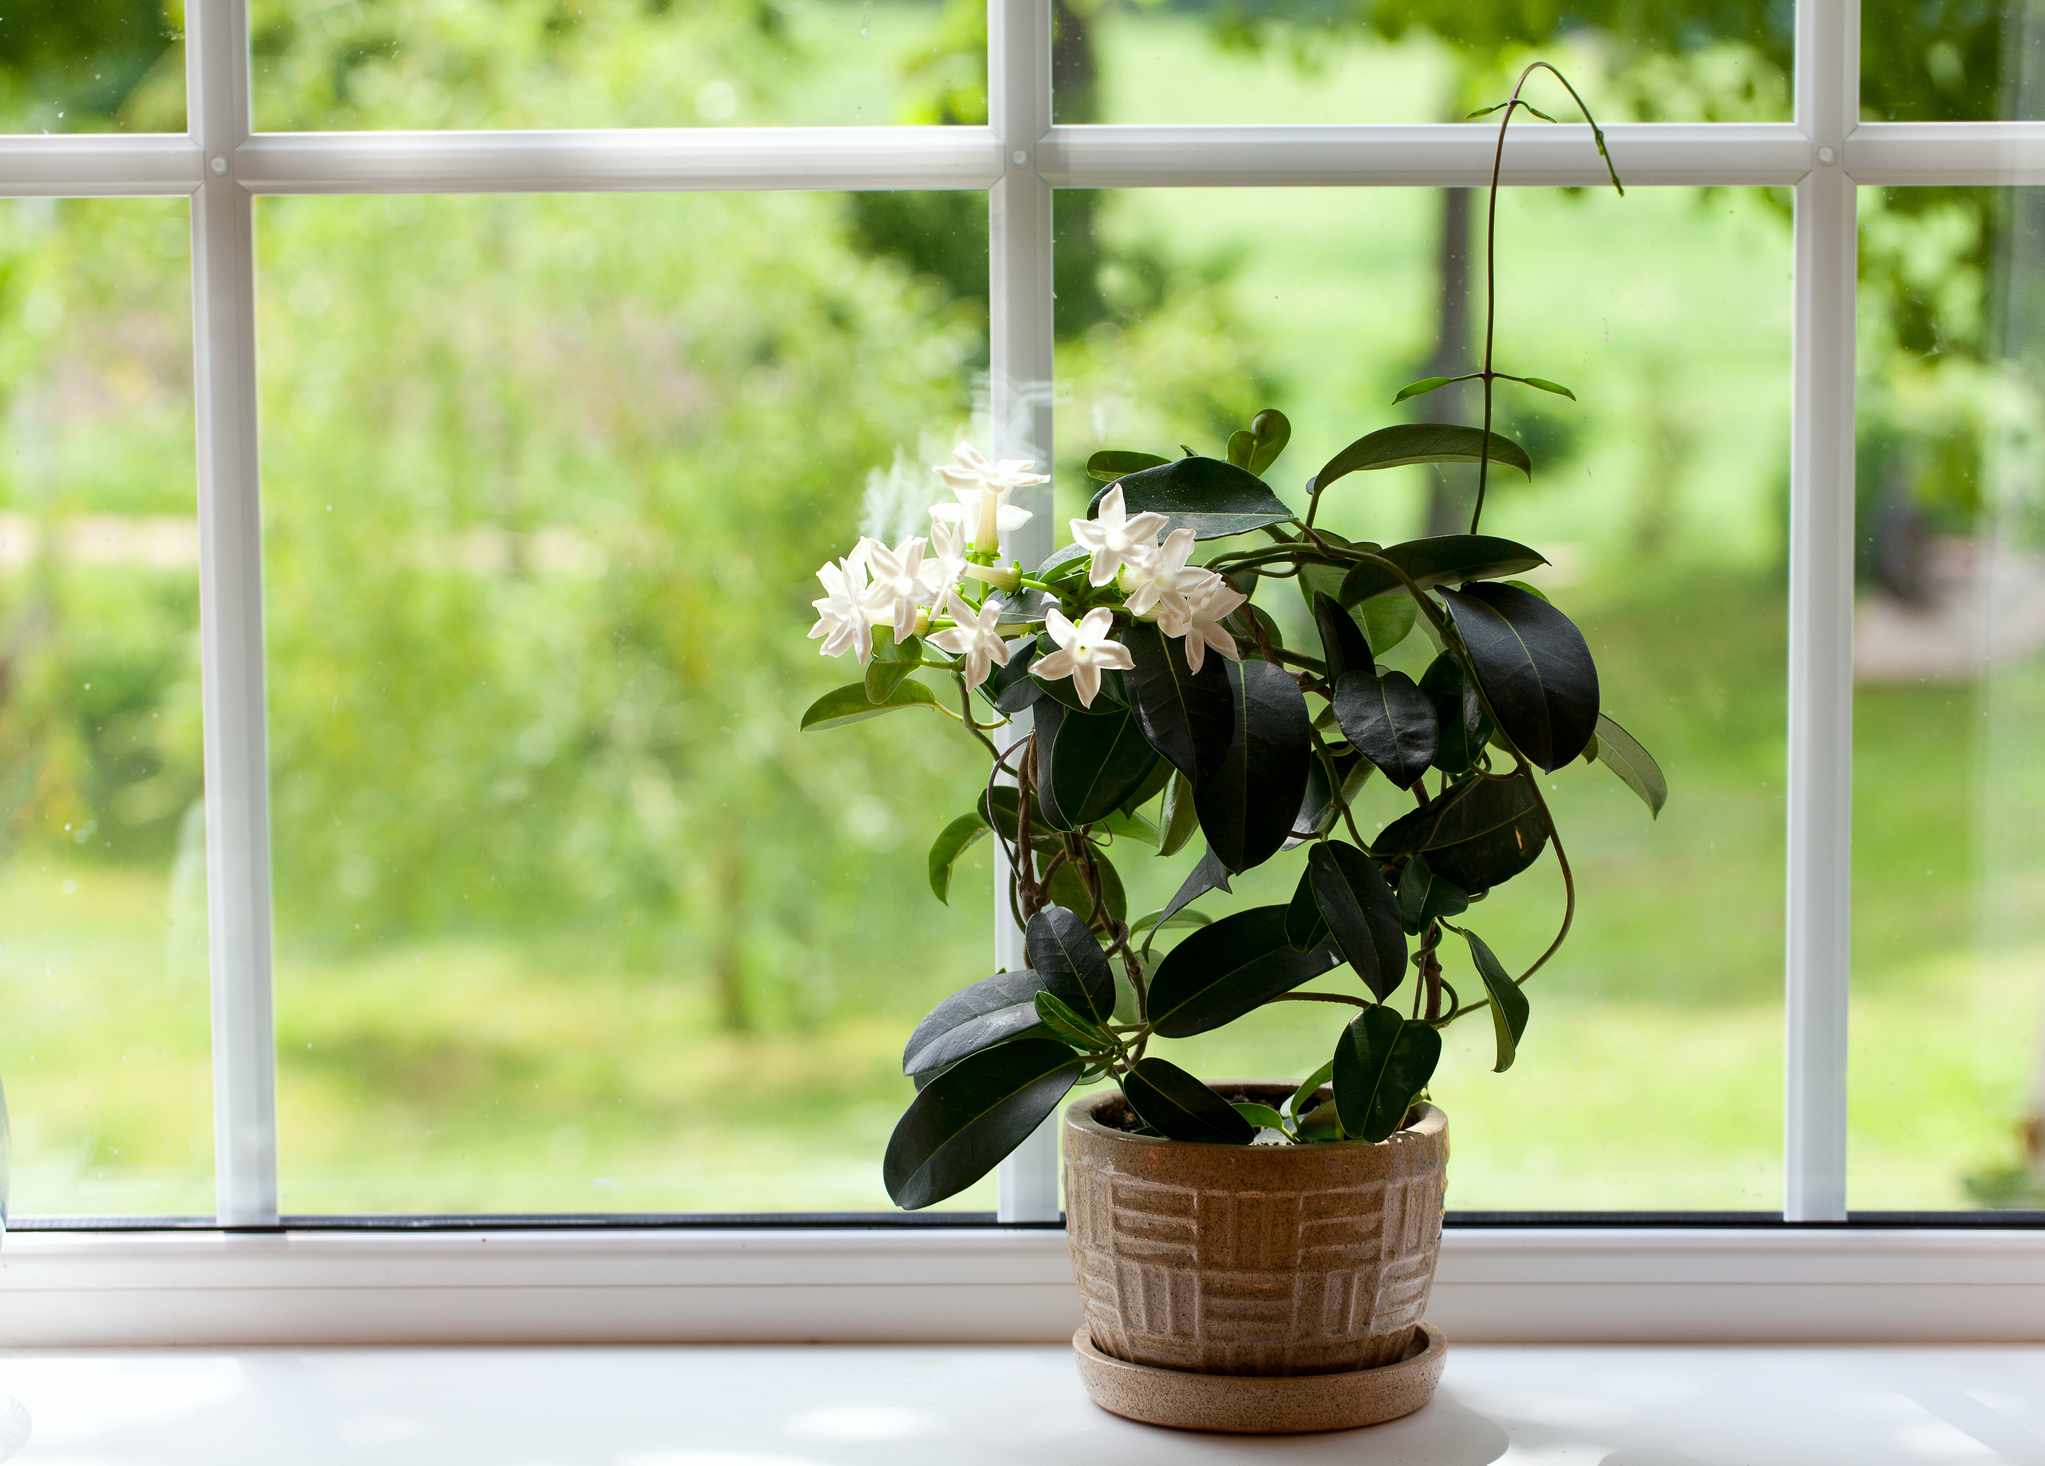 indoor jasmine houseplant with white flowers and green leaves on windowsill